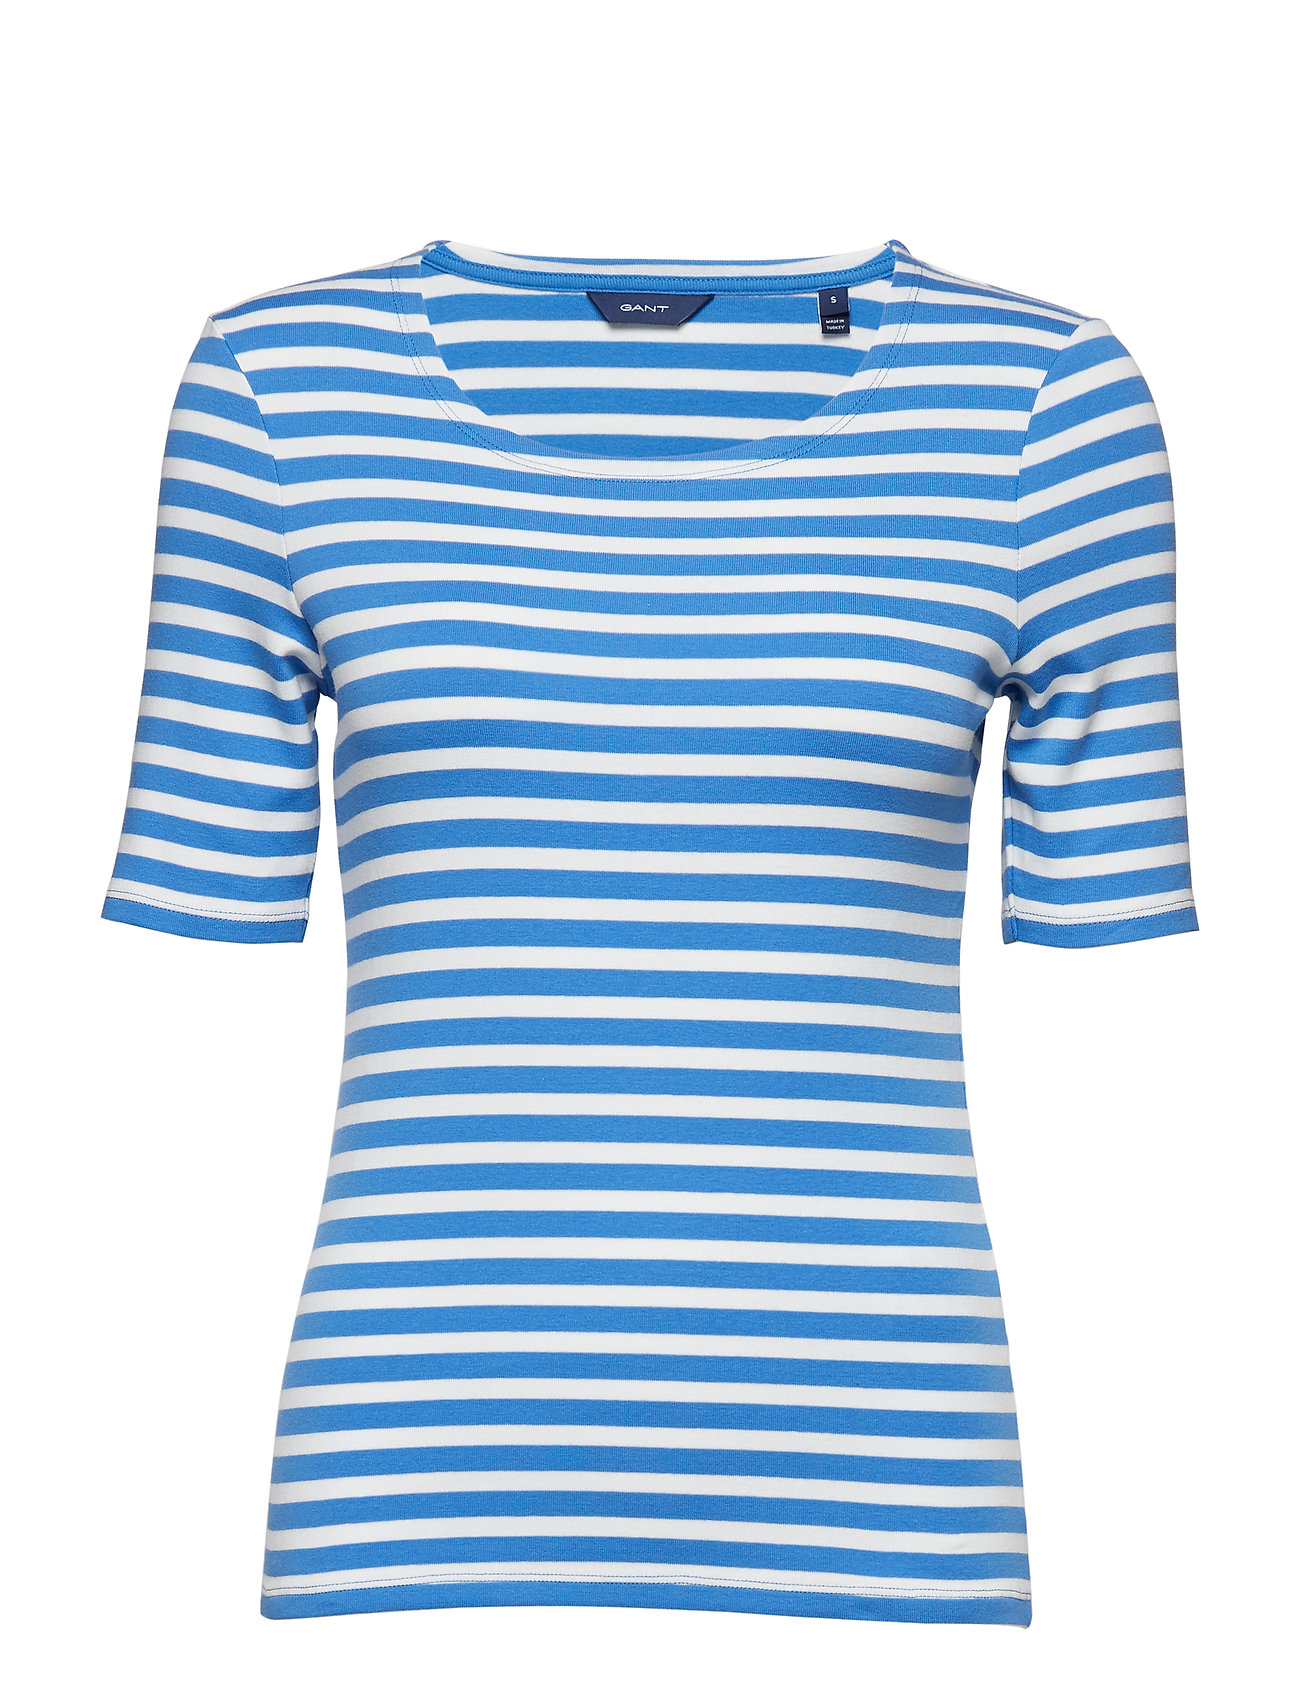 GANT STRIPED 1X1 RIB SS T-SHIRT